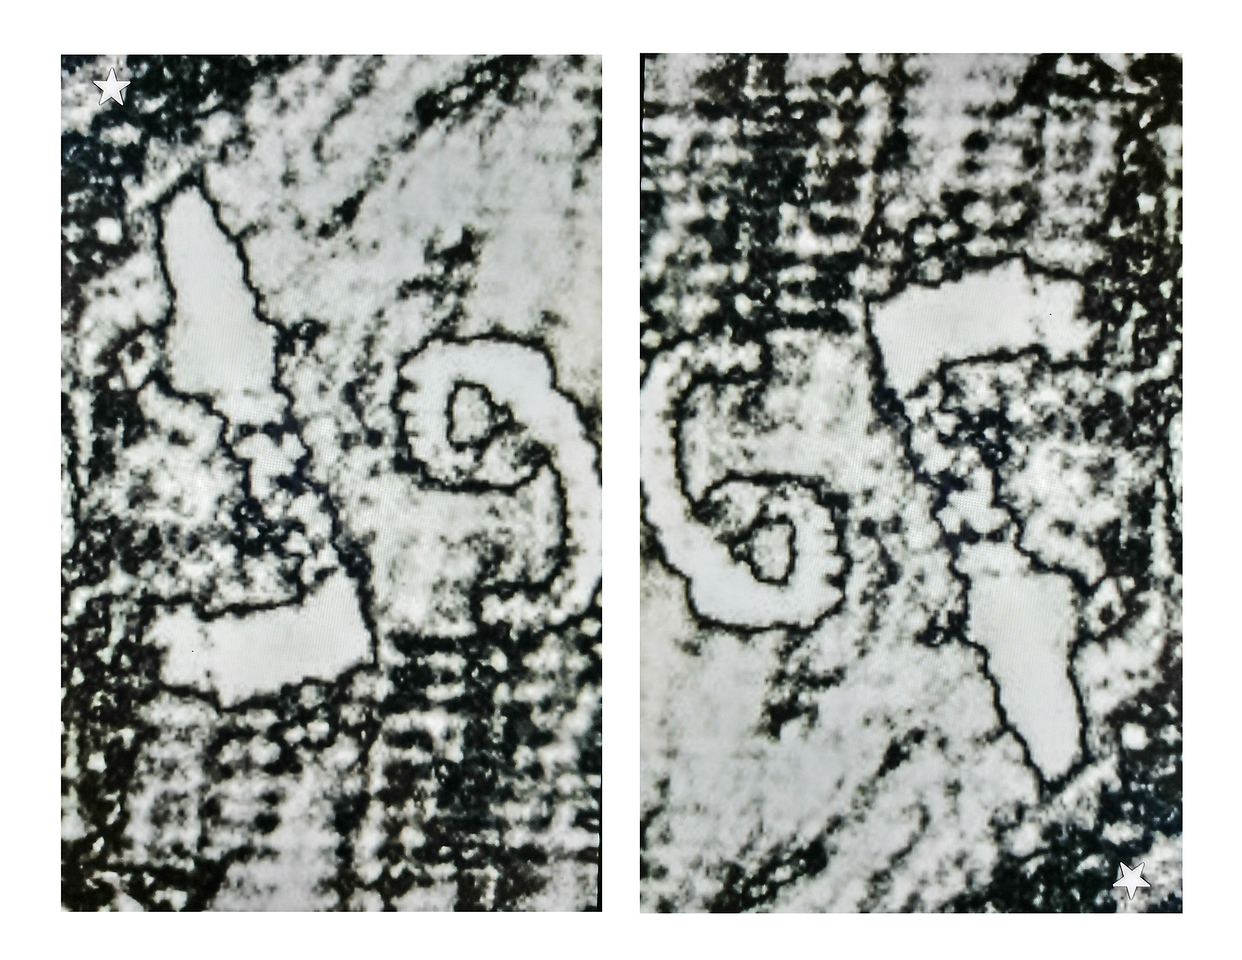 (FIg. 7) The two images above depict two unreversed letters in the inscription. Different faces can be seen depending on the rotation of the image. The comparison above shows the same image turned 180 degrees. Goya's genius is evident in his ability to draw different and distinct images on every plane. Integrating graphic imagery into his letters and topping a letter with a head  was typical of Goya's style.